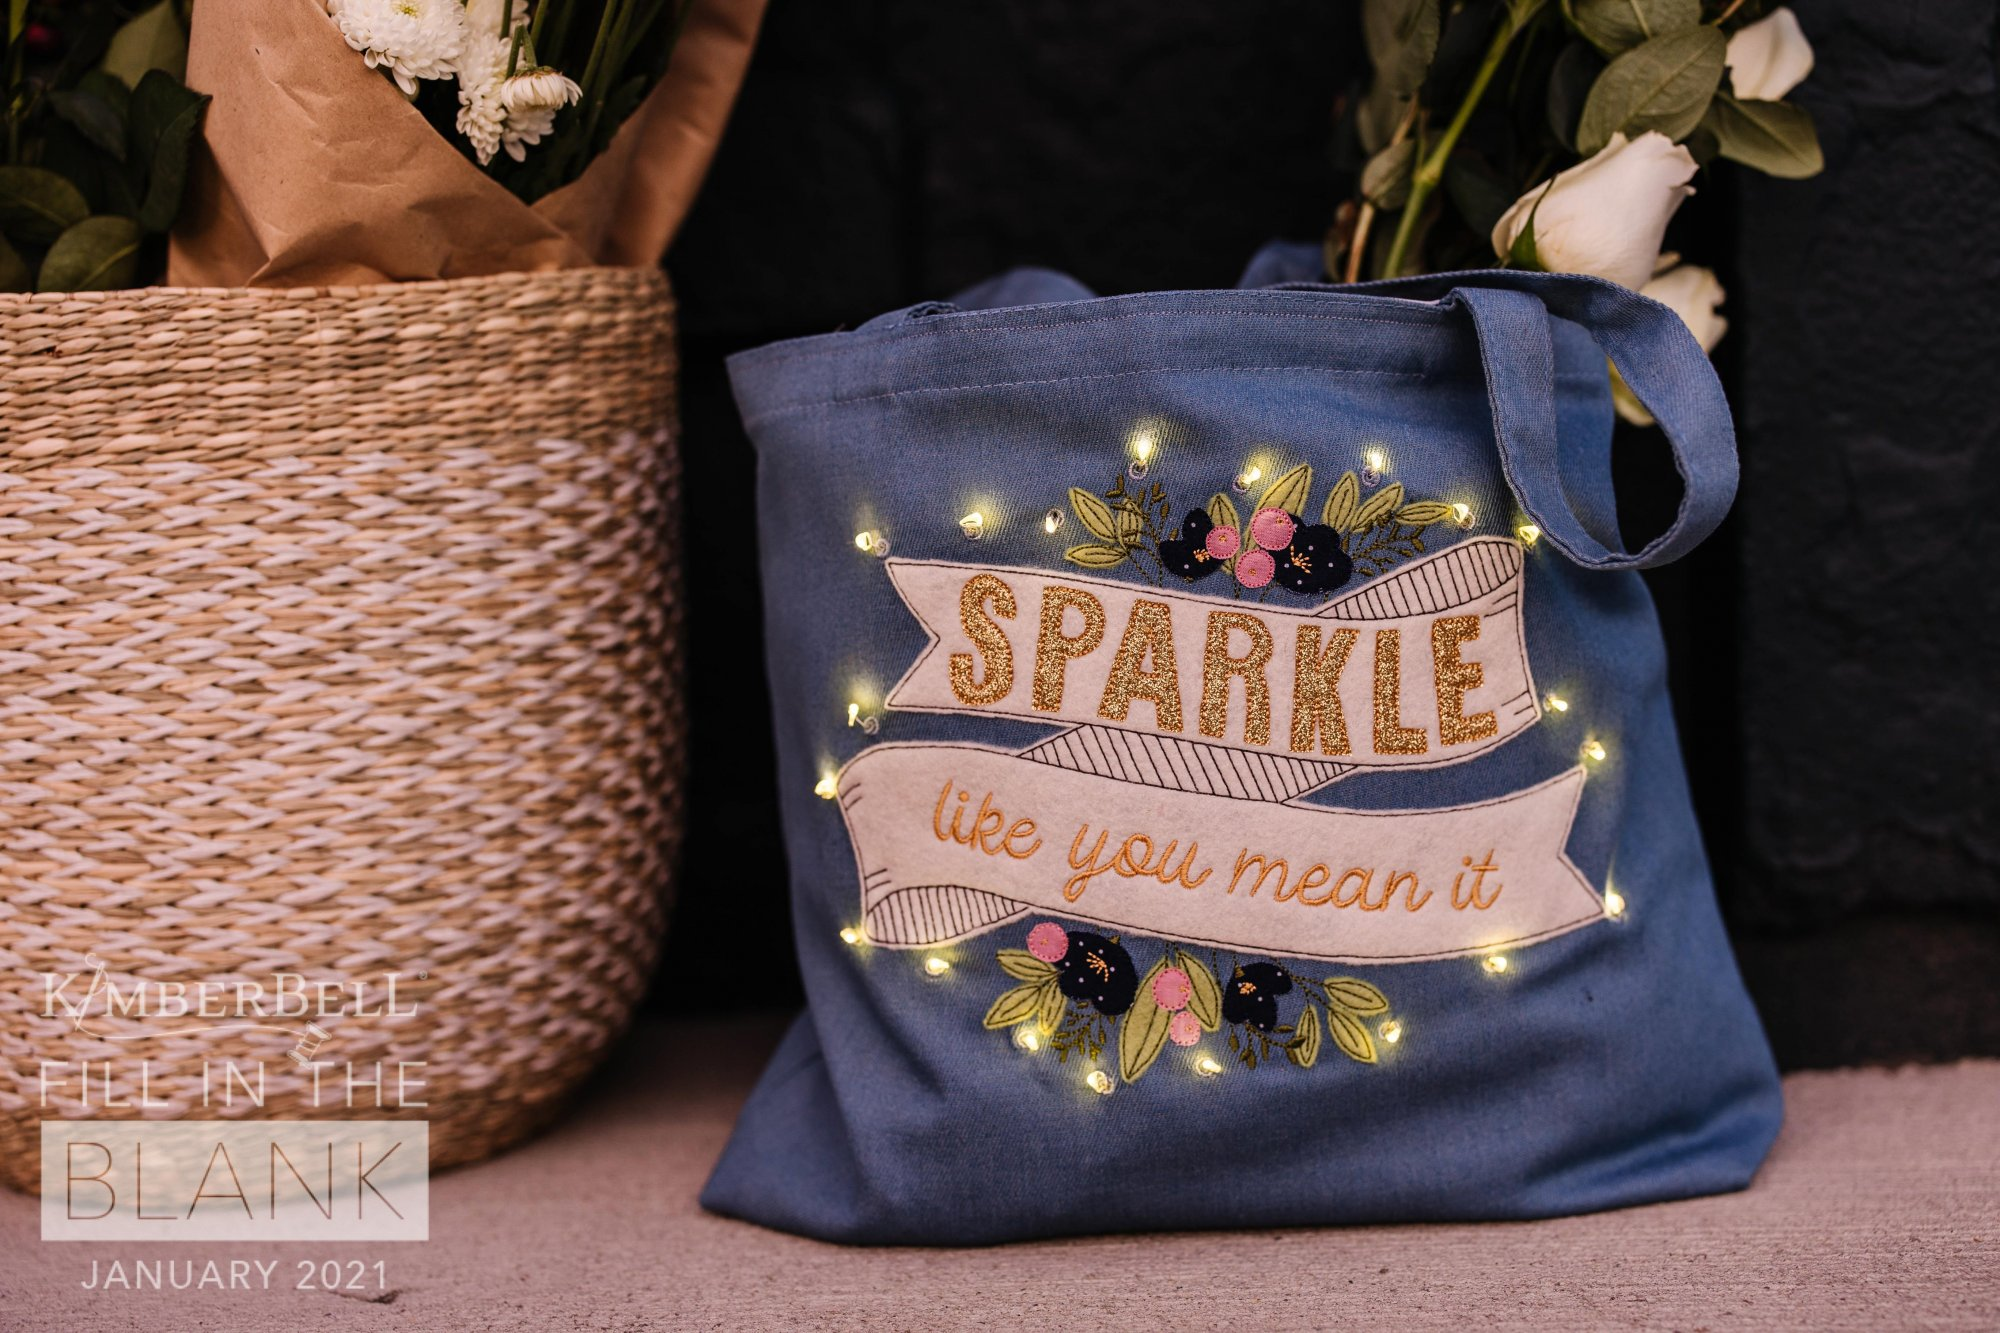 Fill In The Blank - Extra Embellishment Kit - January